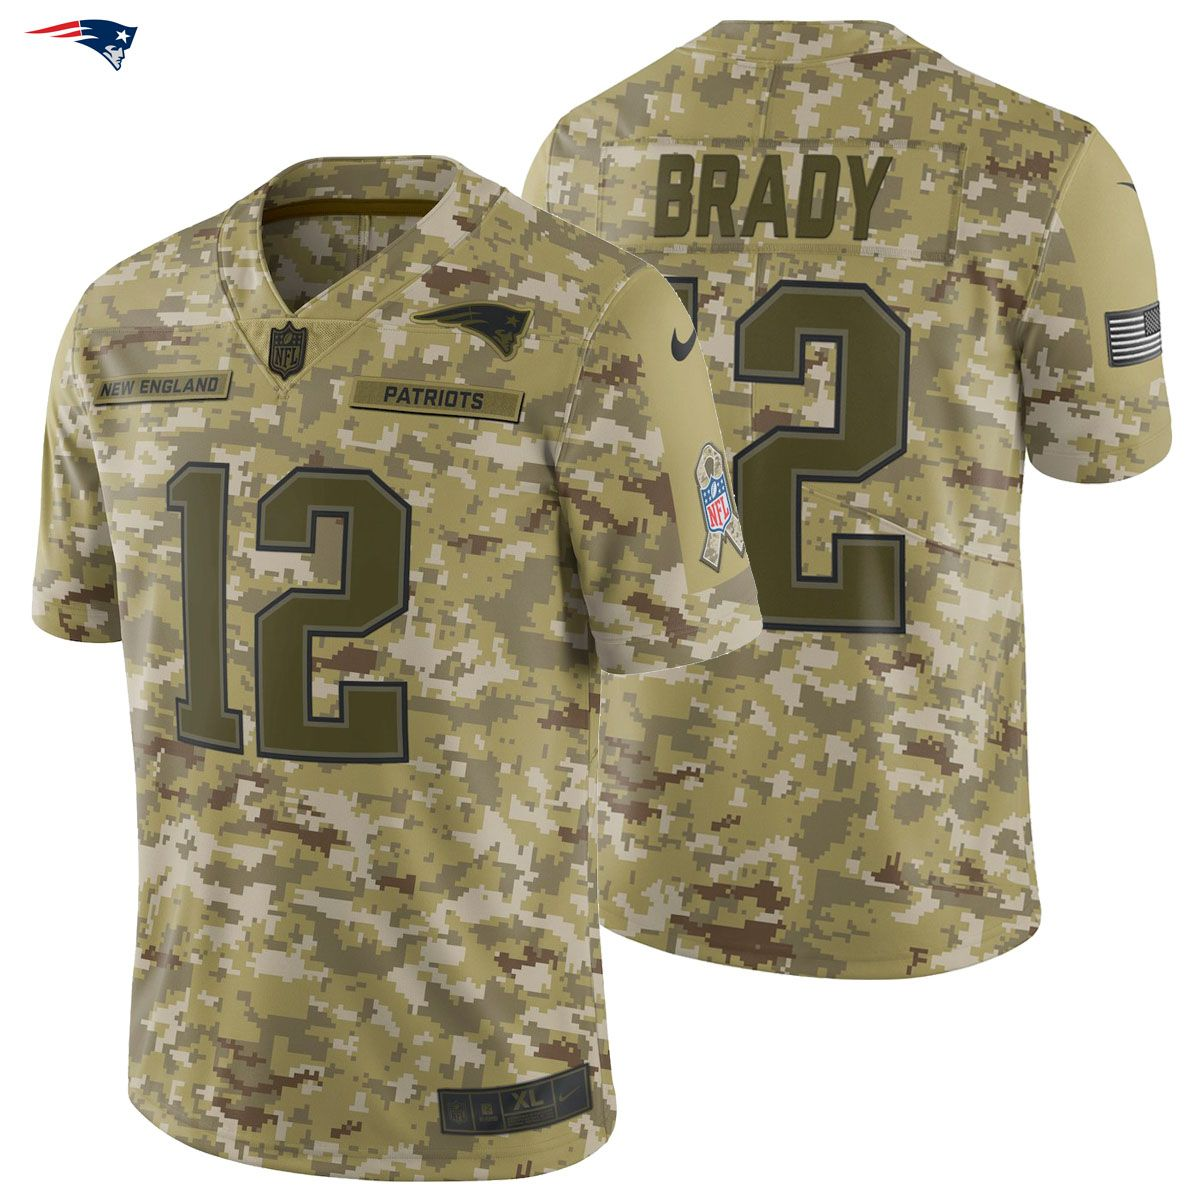 Tom Brady  12 Nike 2018 Salute to Service Limited Jersey New England  Patriots Army Salute The Troops! The NEW 2018 Salute To service Line Is  Finally Here! 375df5fc2